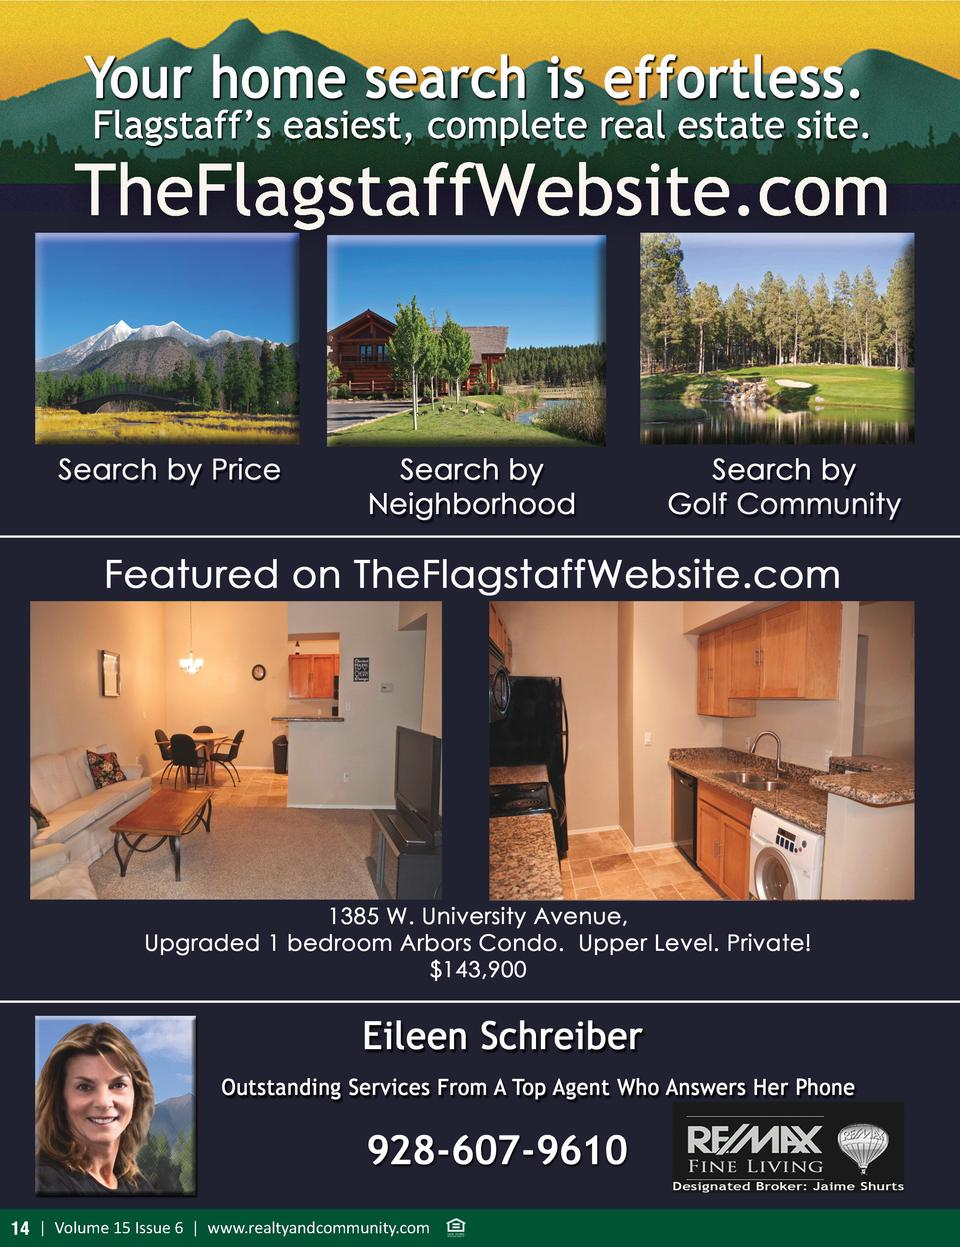 Flagstaff   s easiest, complete real estate site.  TheFlagstaffWebsite.com  14   Volume 15 Issue 6   www.realtyandcommunit...